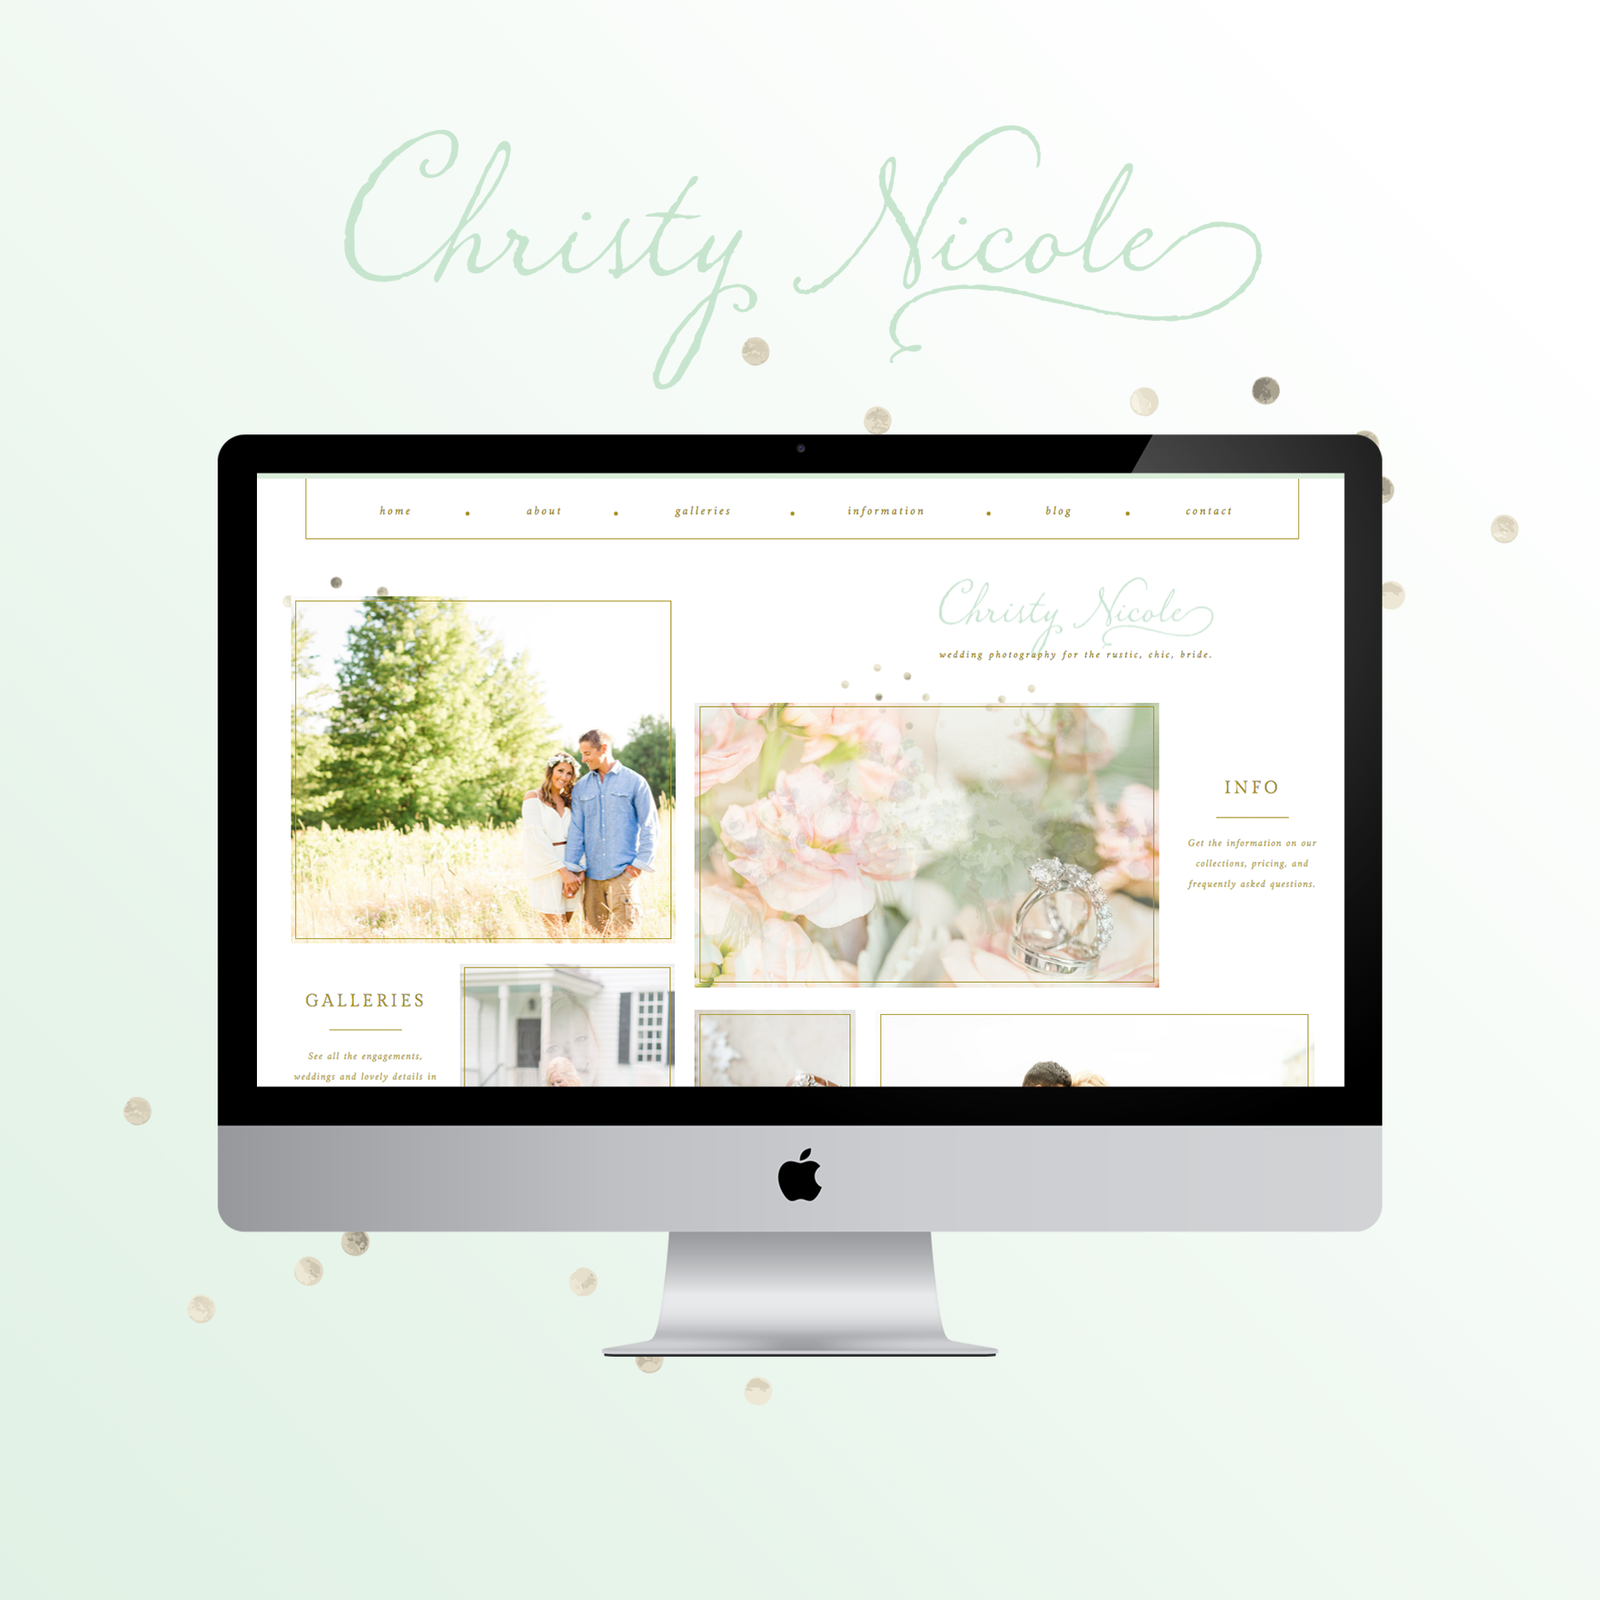 christy-nicole-site-template